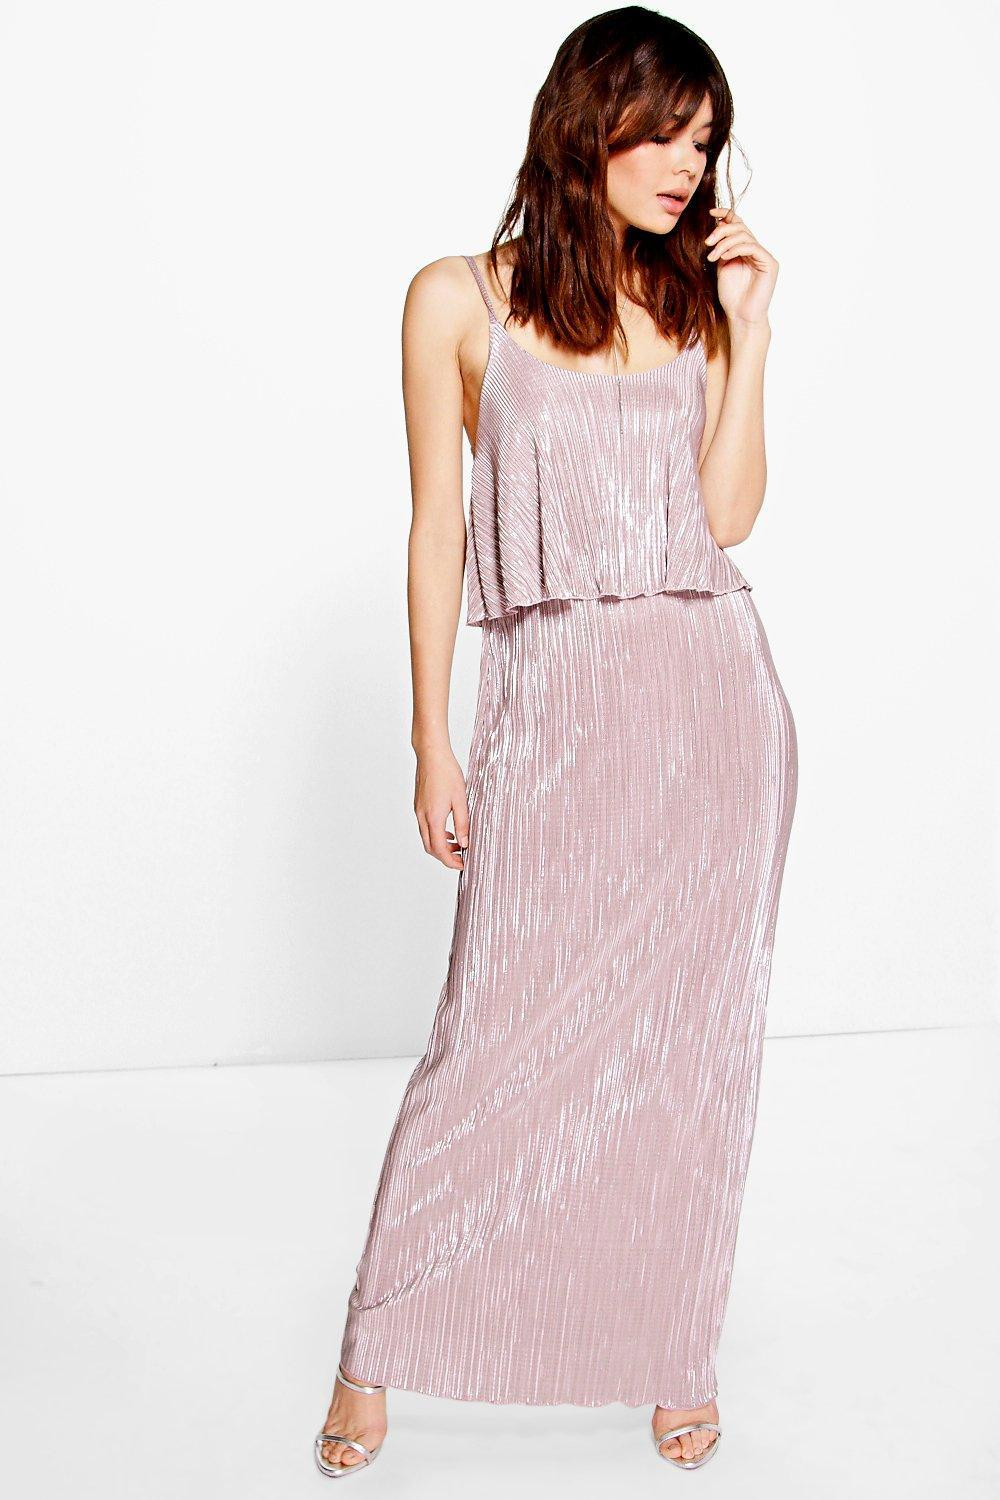 c0a43503fa Boohoo Tahnee Metallic Pleated Maxi Dress in Purple - Lyst